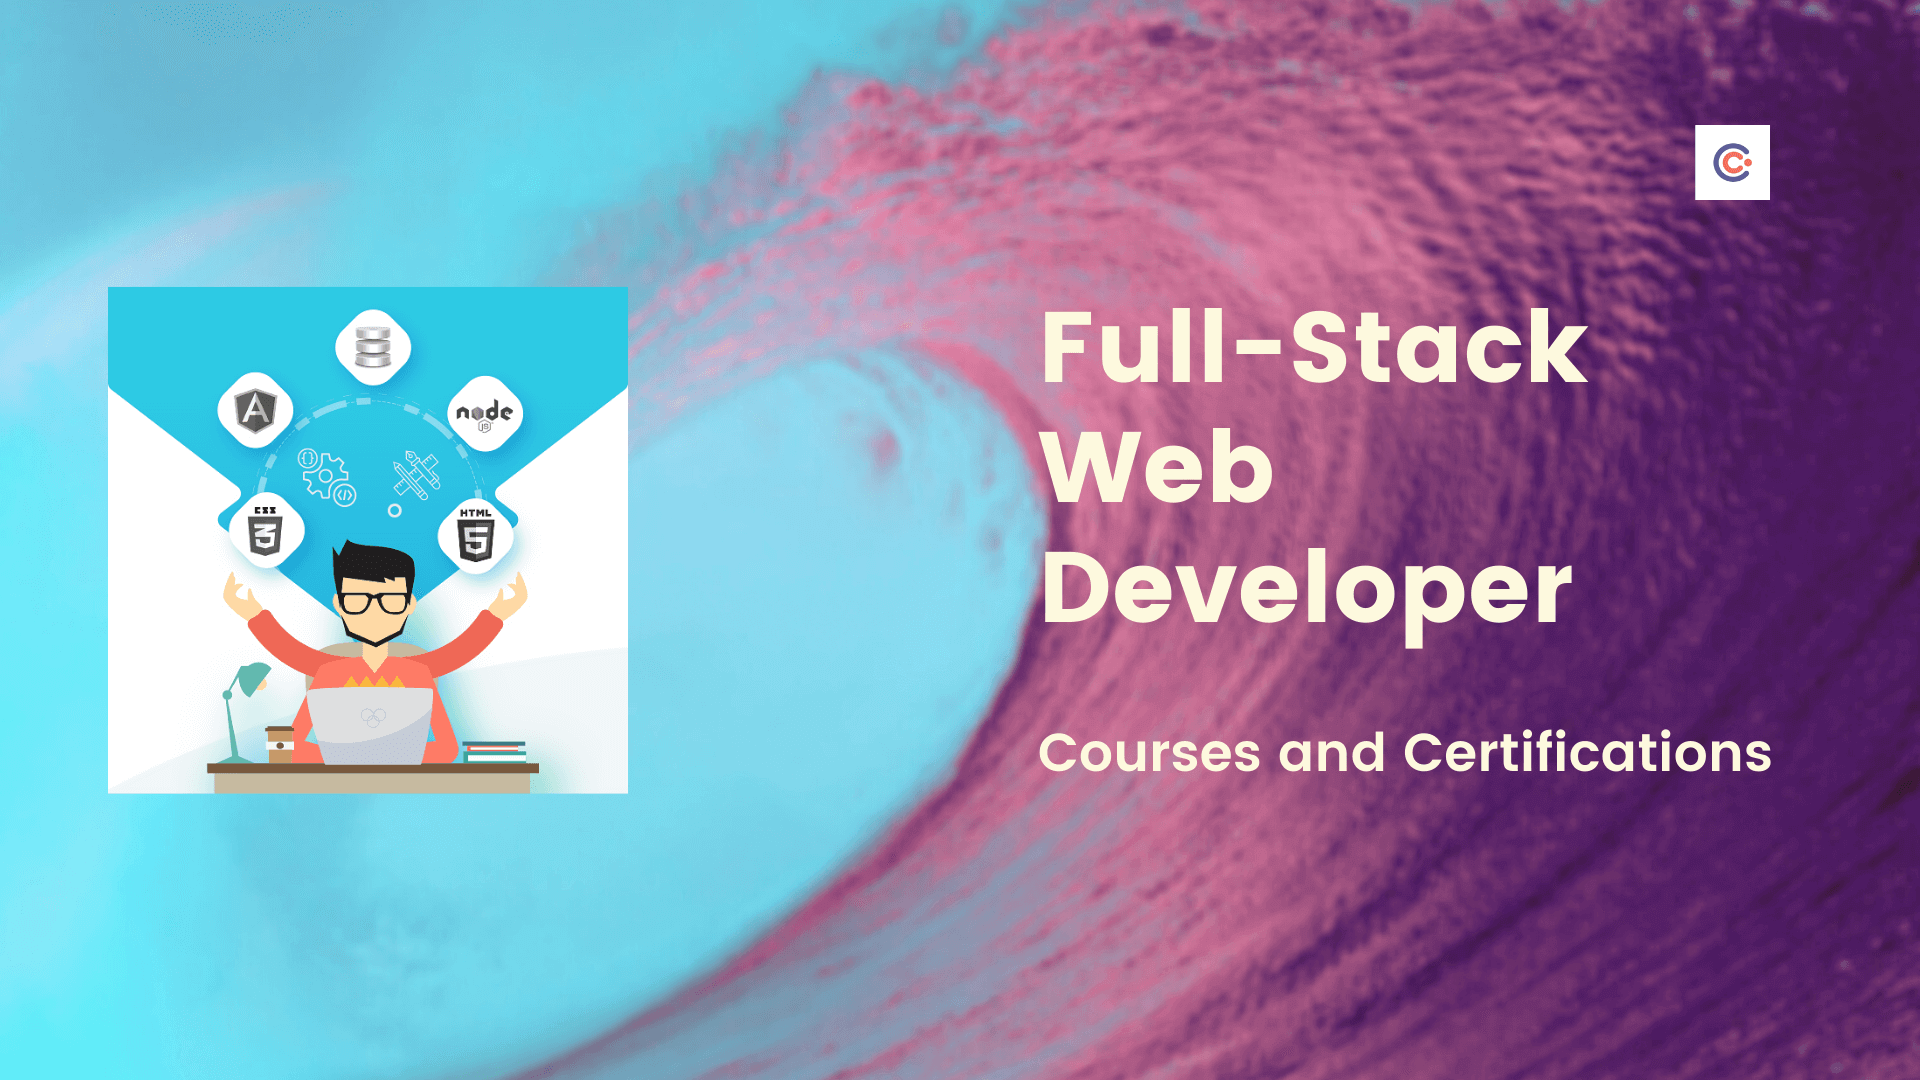 10 Best Full Stack Web Developer Courses and Certifications - Learn Full stack Web Development Online